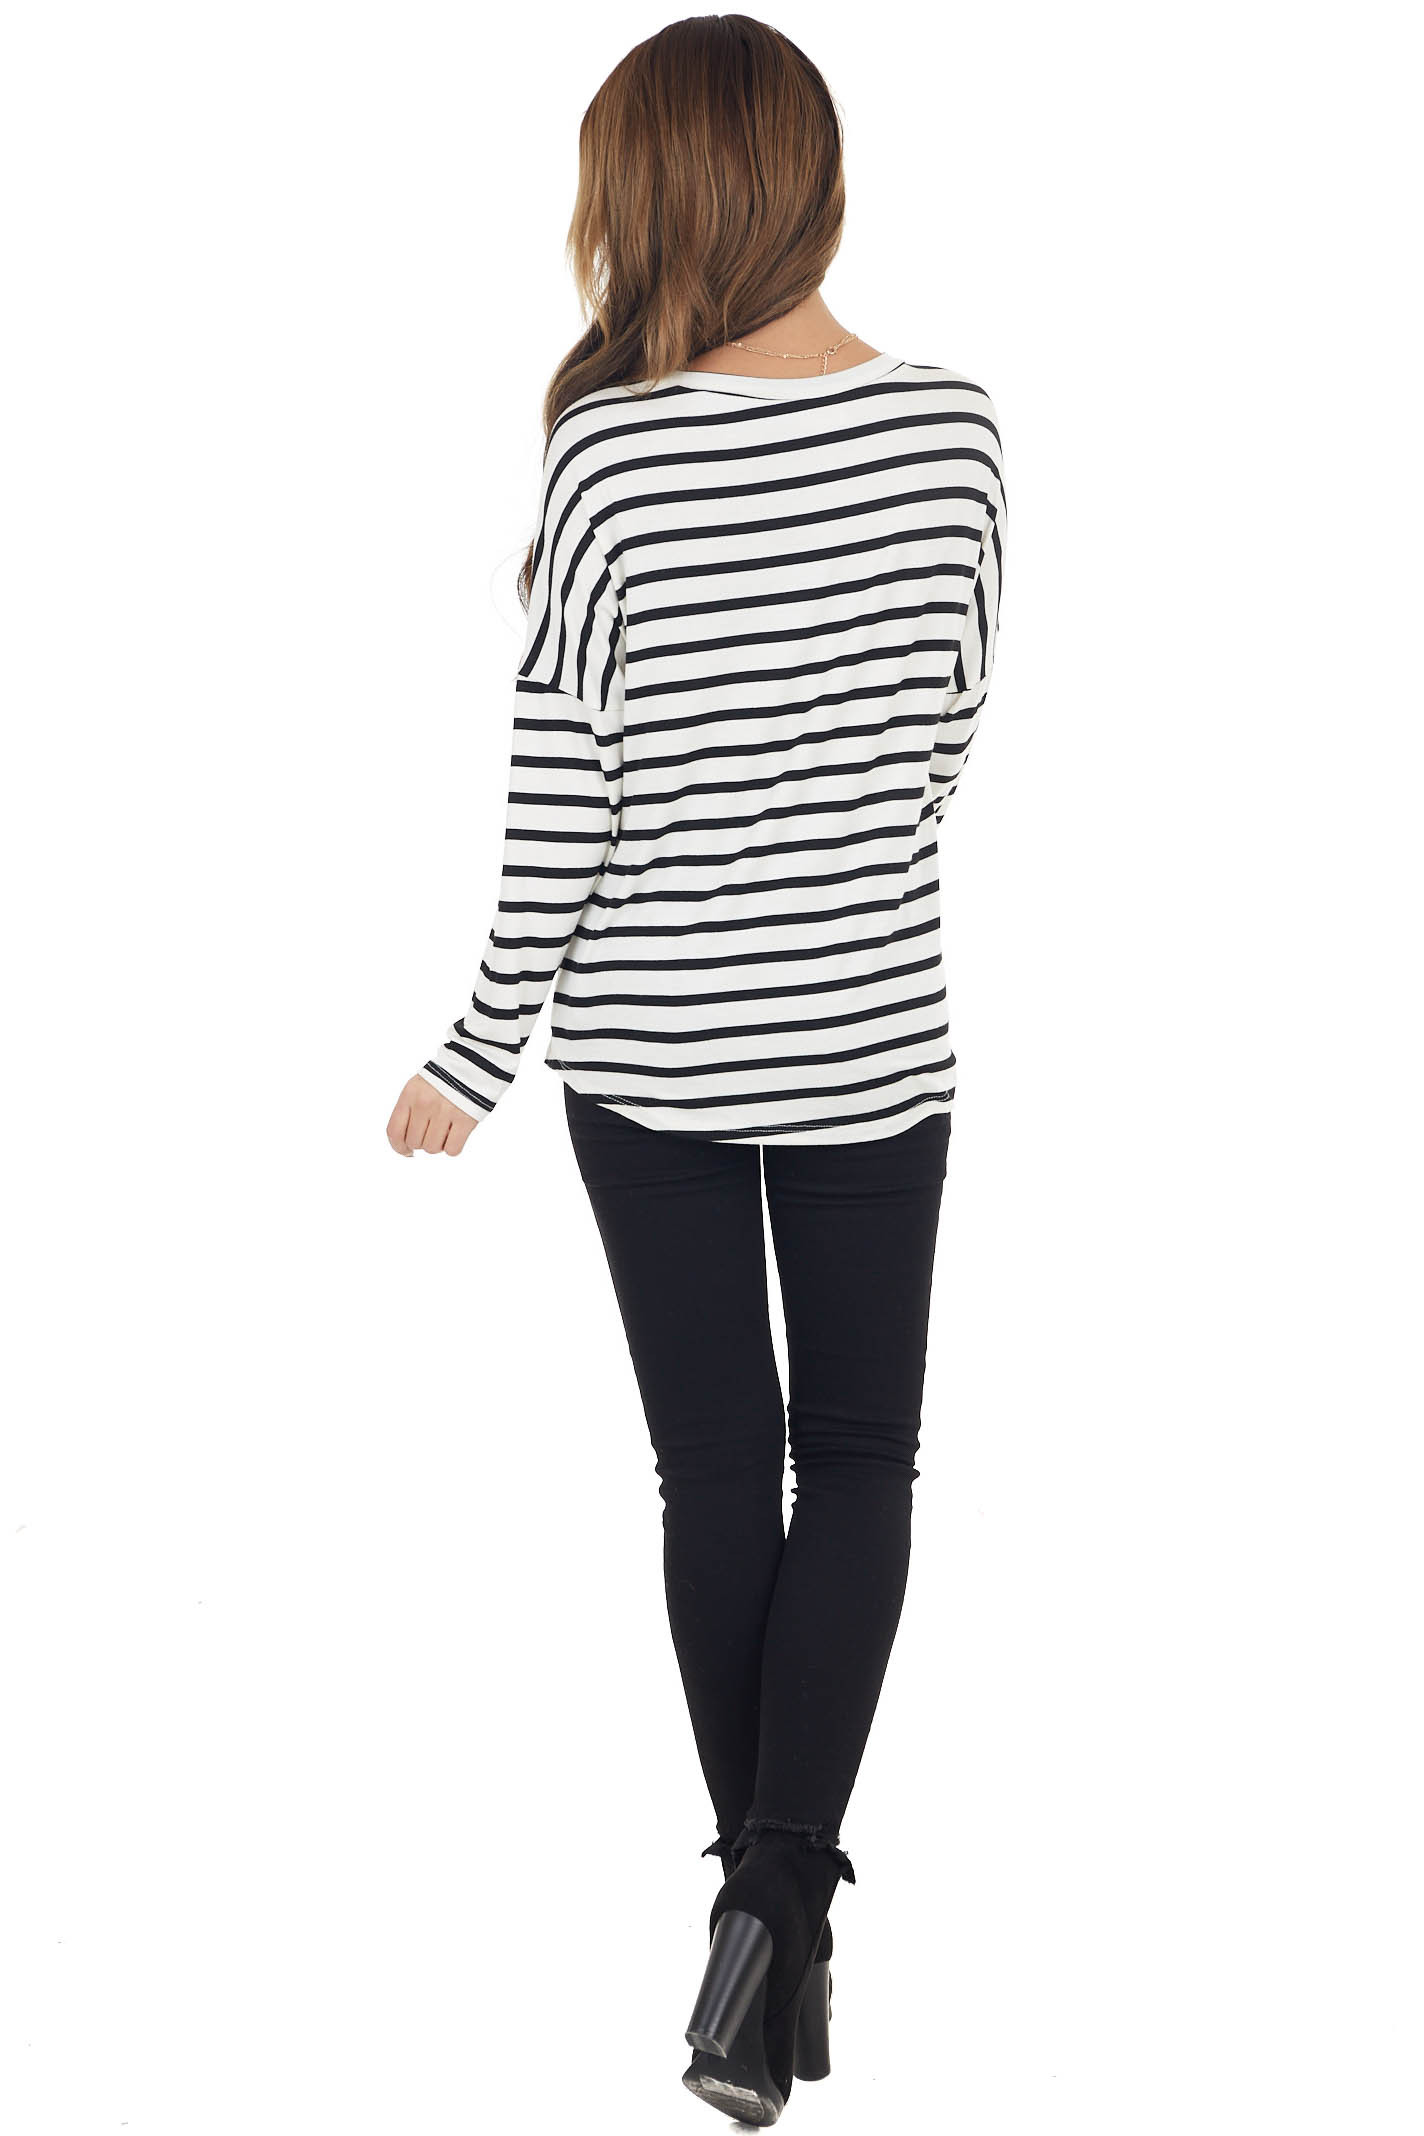 Pine and Ivory Striped Long Sleeve Top with Solid Front